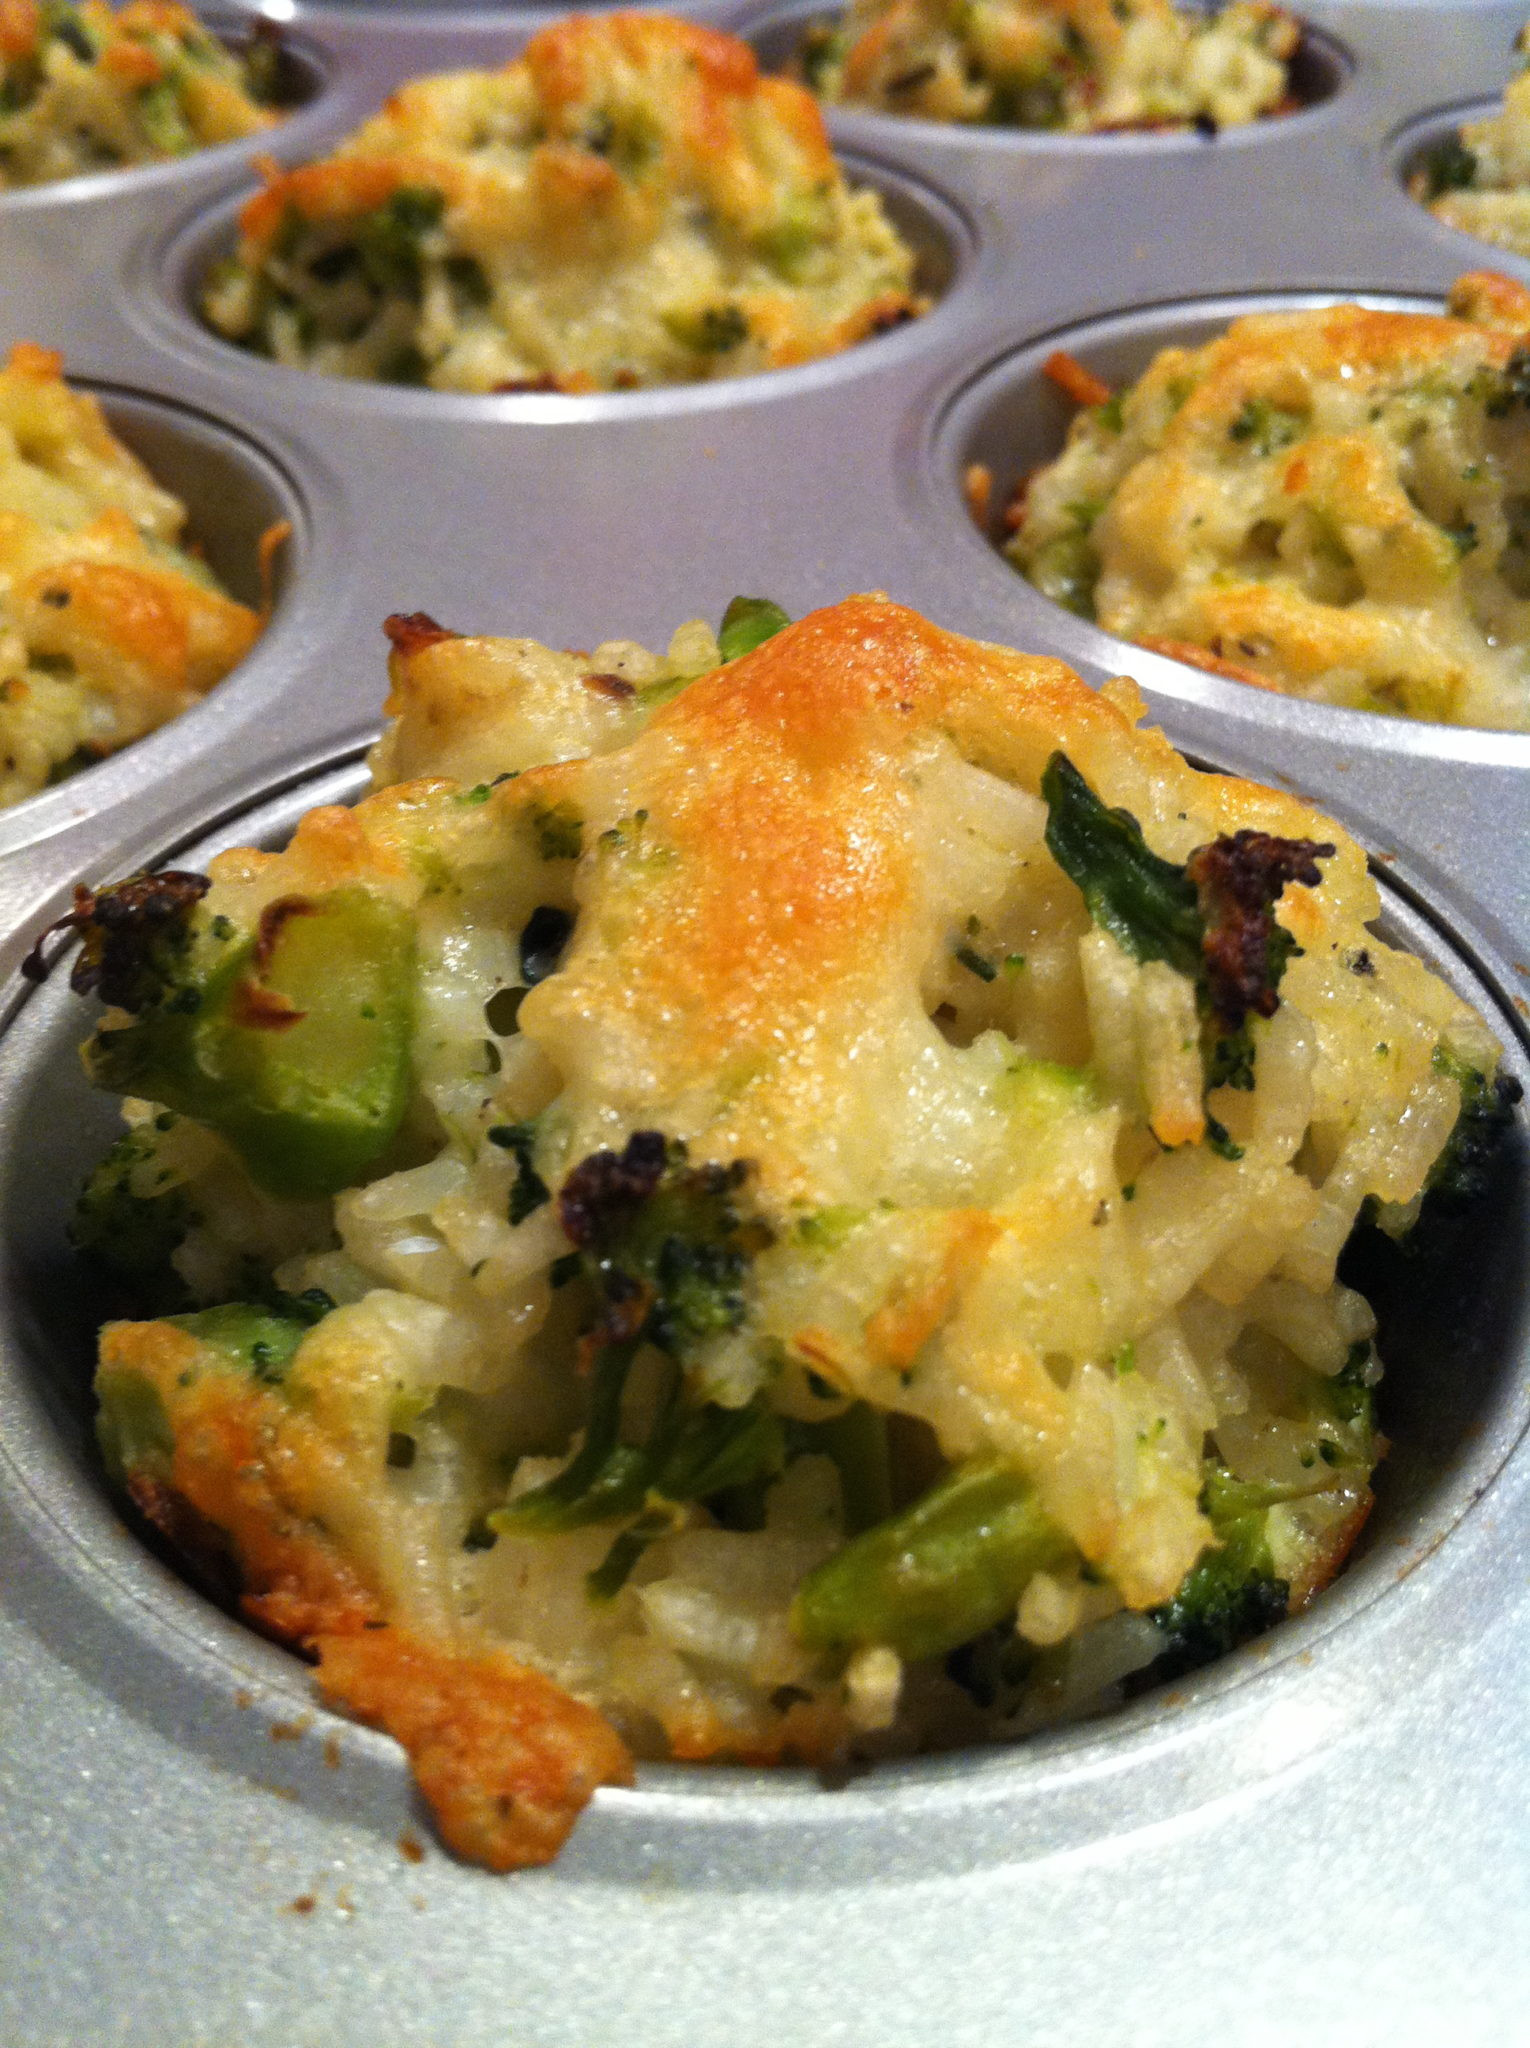 Broccoli Cheese Rice  Baked Cheddar Broccoli Rice Cups – The Fountain Avenue Kitchen